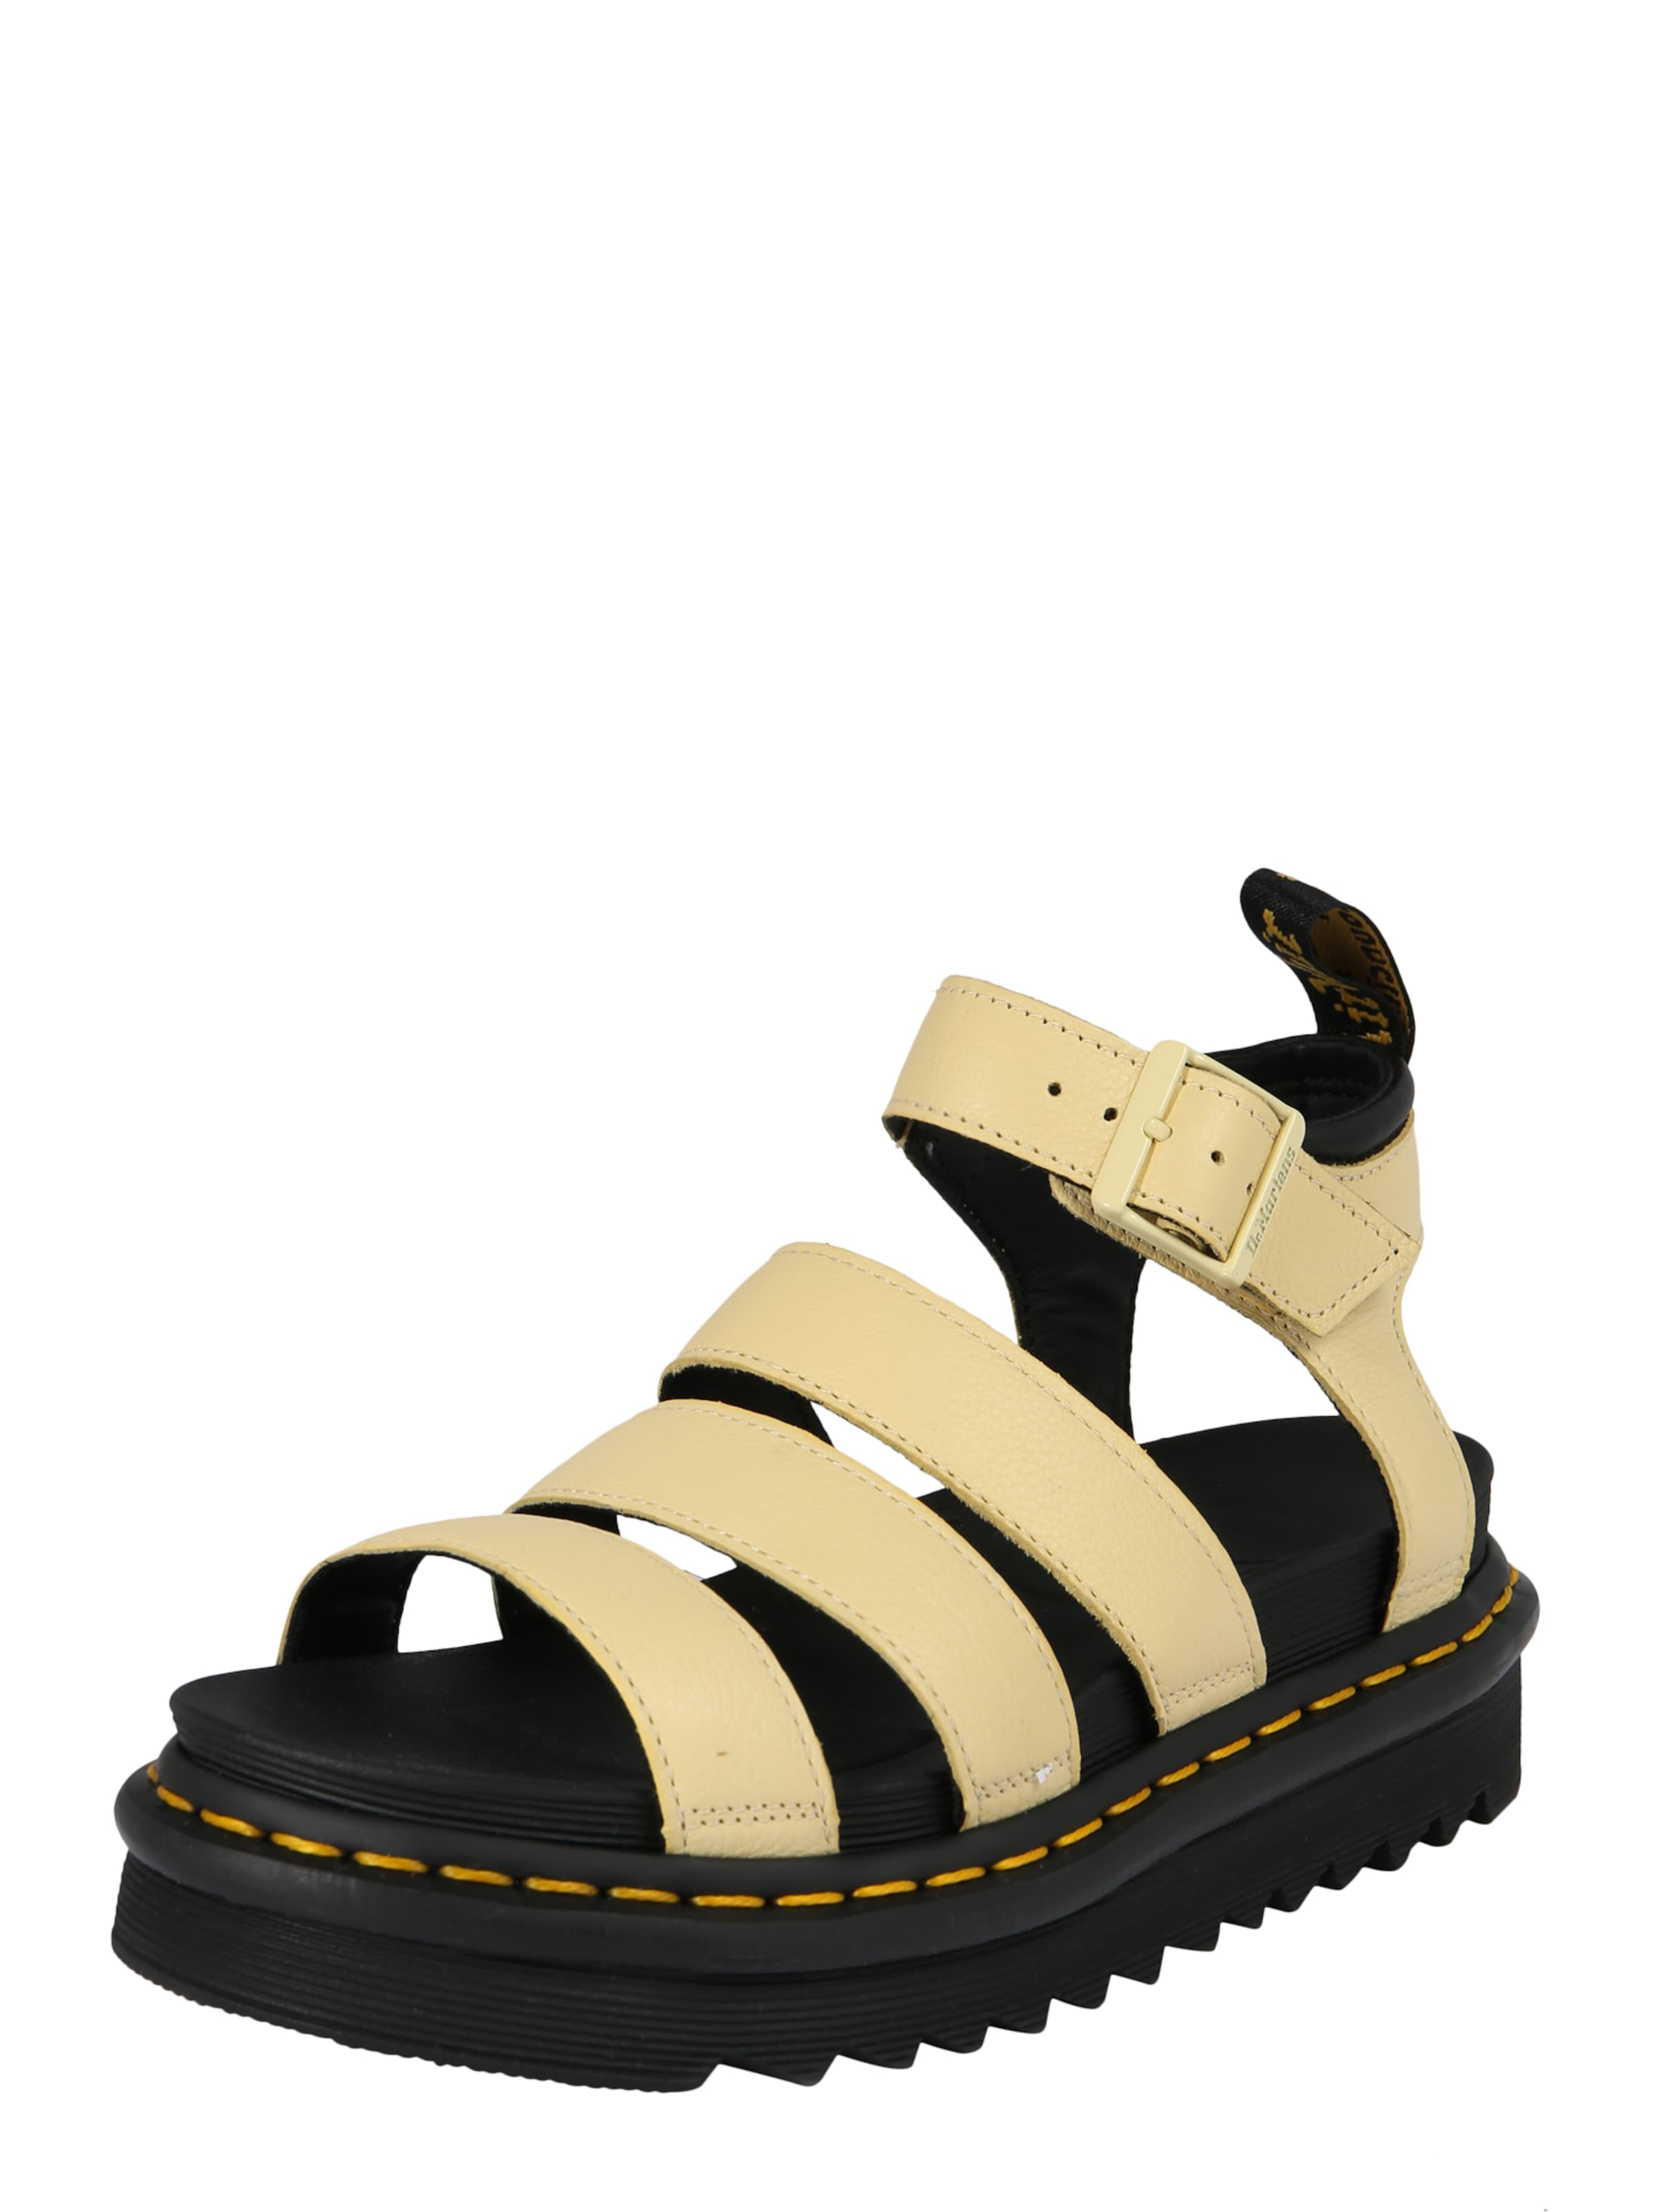 'chunky HellblauOffwhite DrMartens Blaire' In Sandale KlJTF35u1c